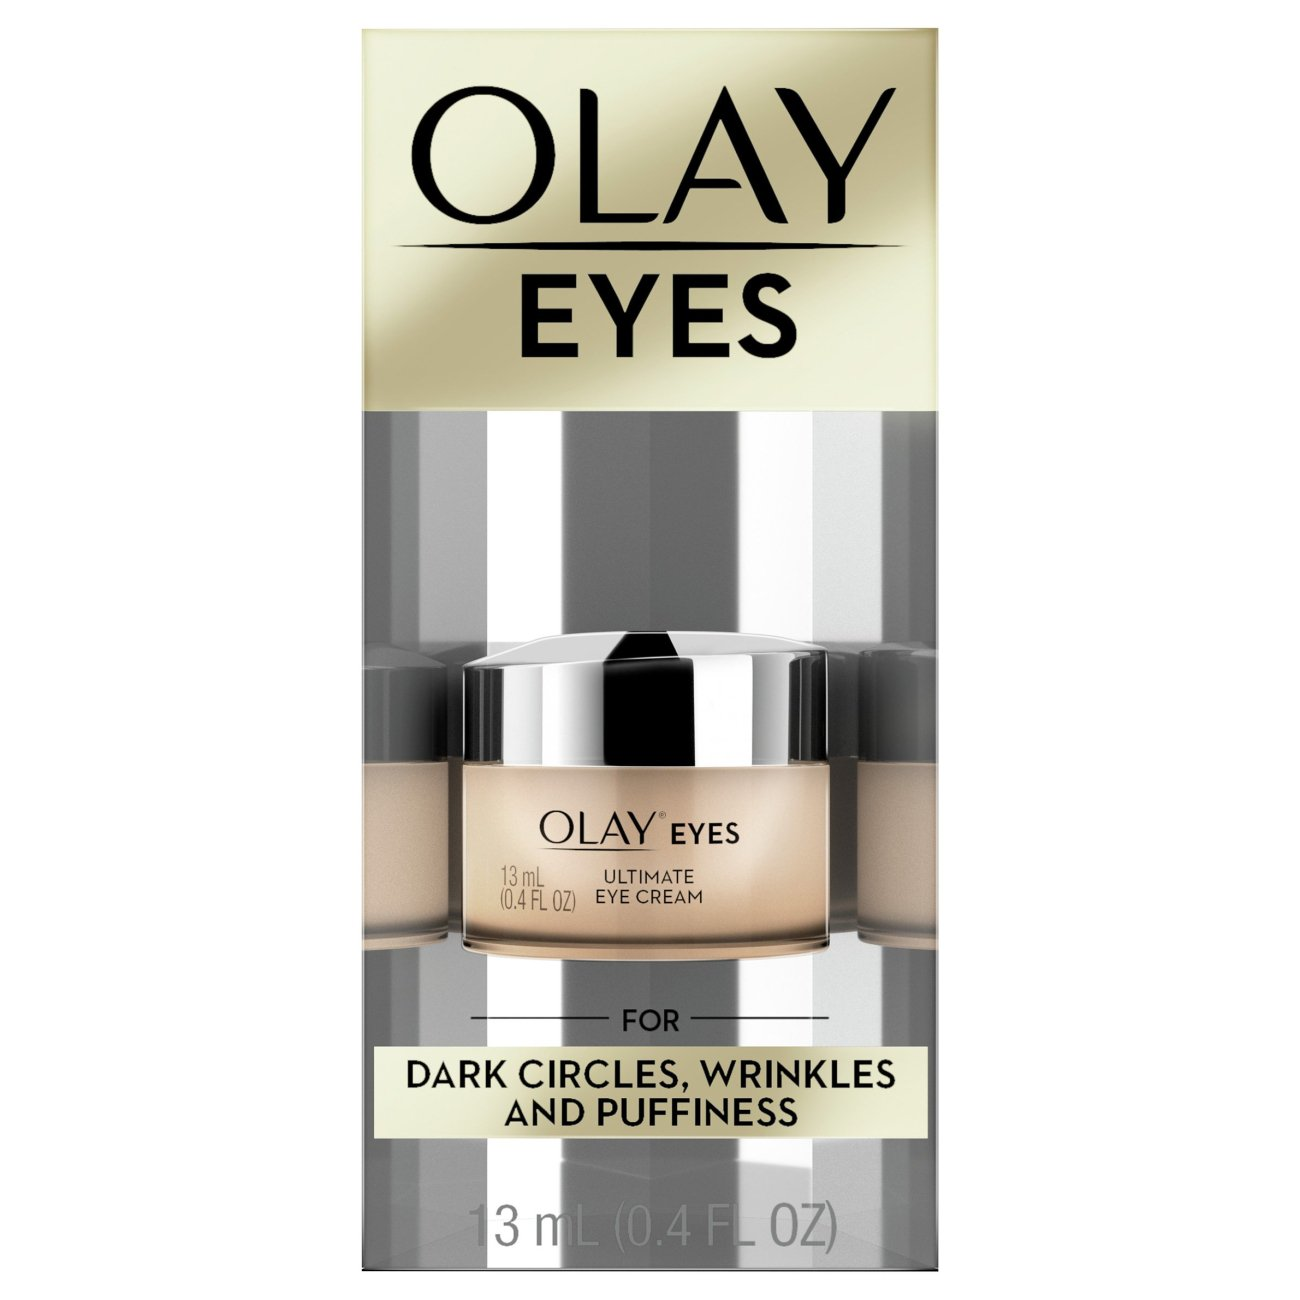 Olay Eyes Ultimate Eye Cream For Wrinkles Puffy Eyes And Dark